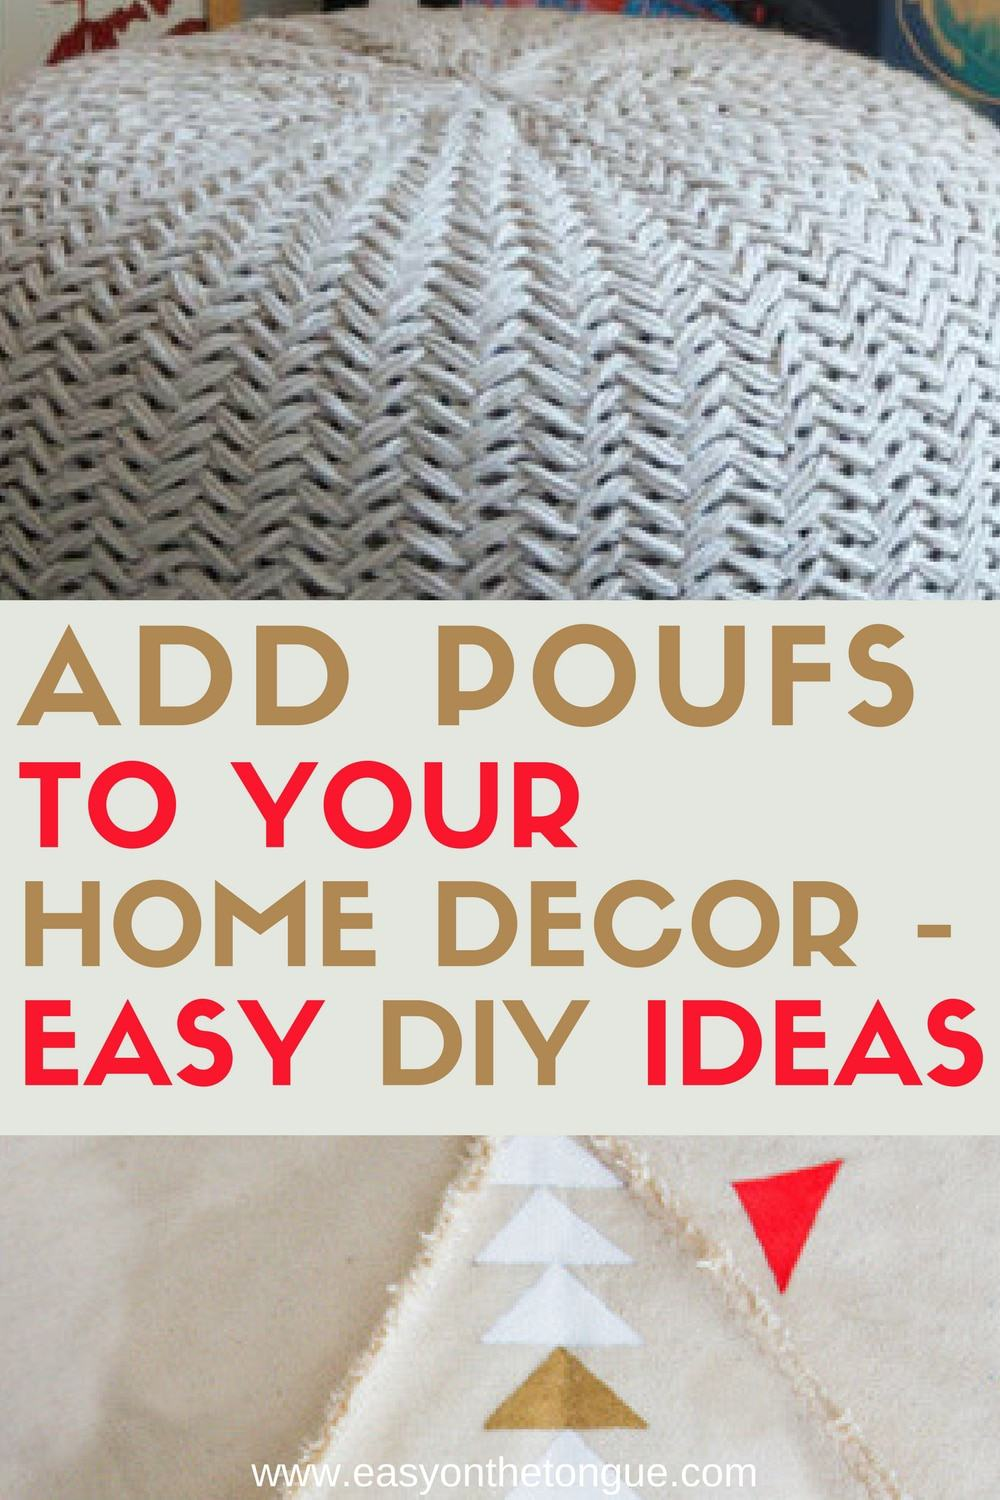 Add poufs to your home decor easy DIY Ideas 2